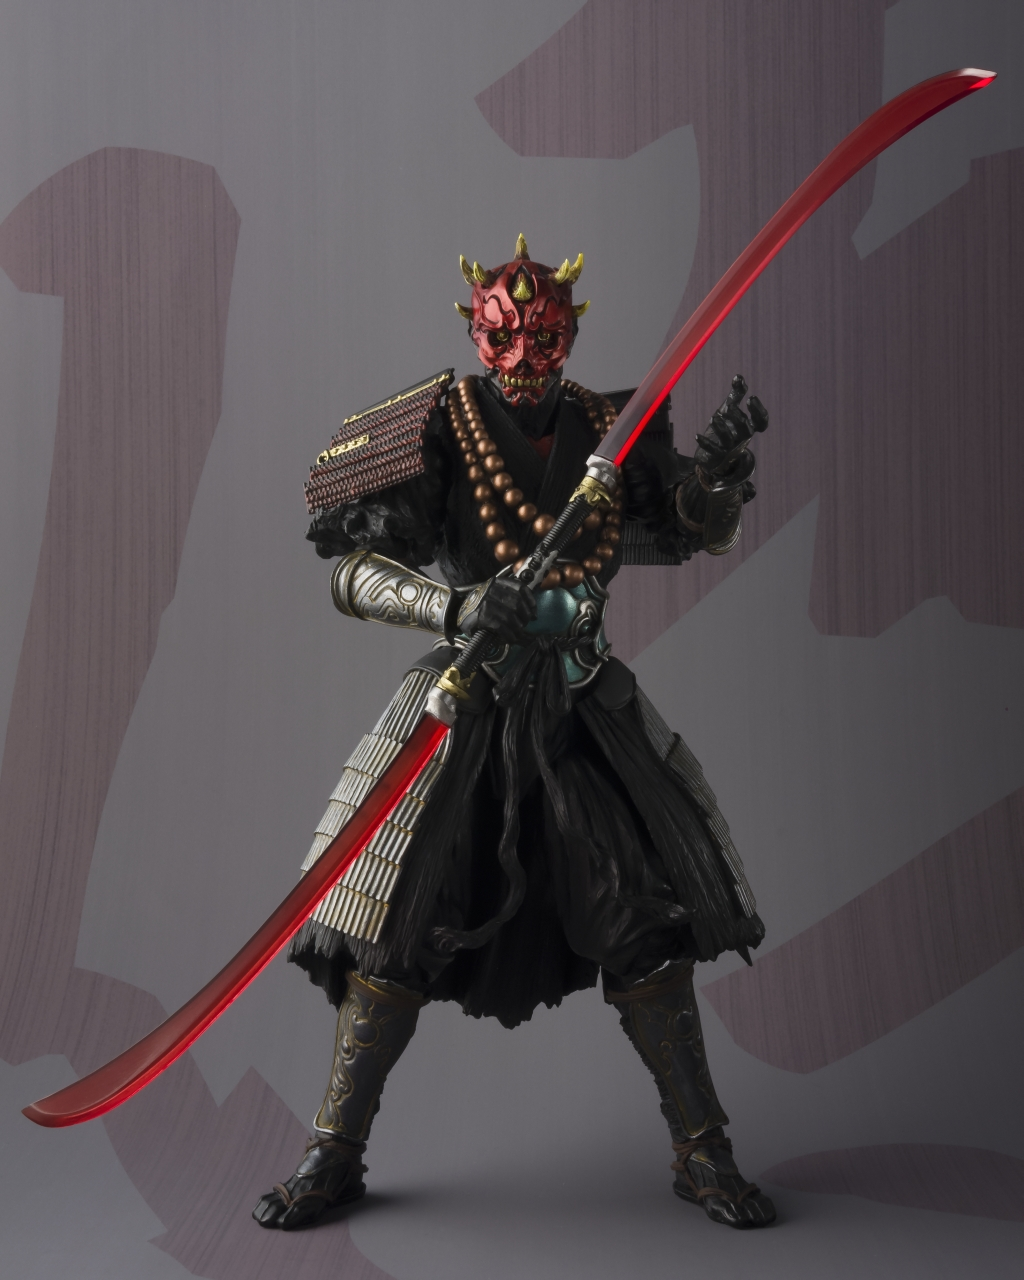 Bandai Star Wars Darth Maul Mei Sho Sohei Figure